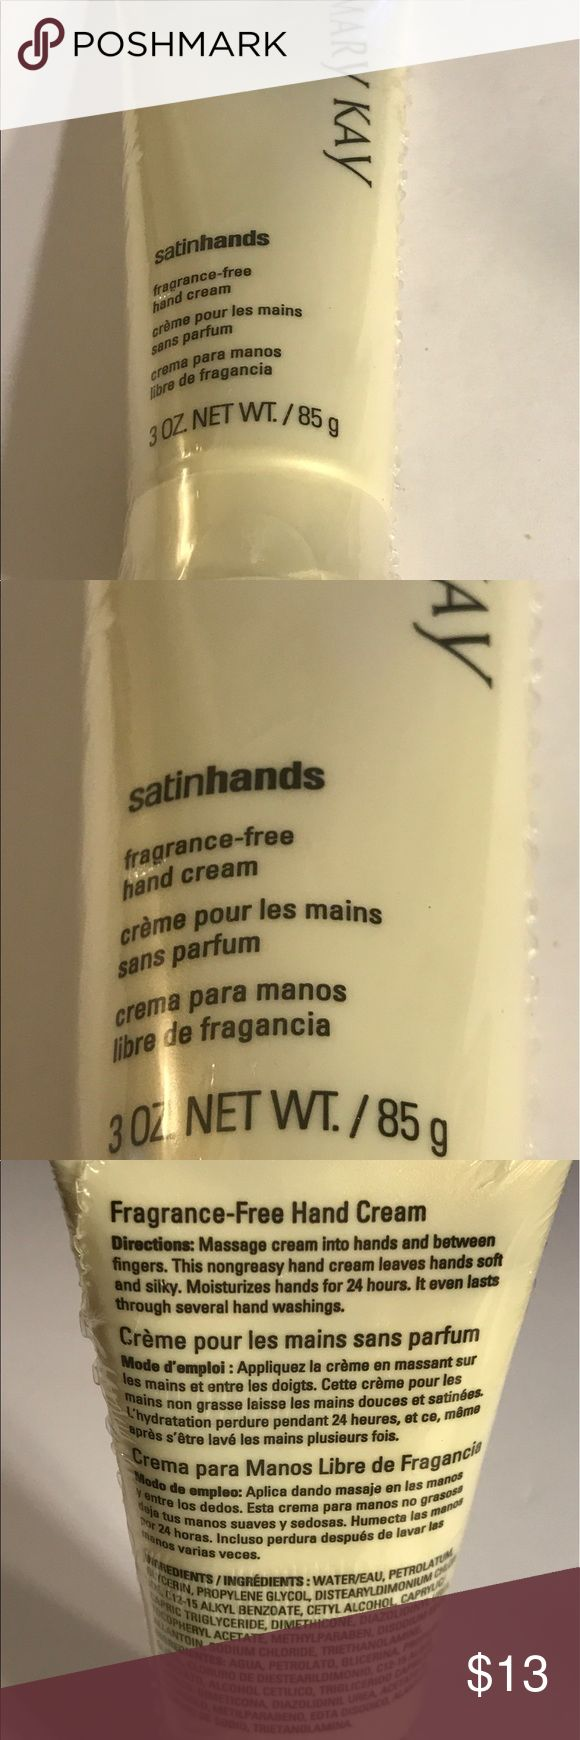 Mary Kay satin hands fragrance free hand cream Mary Kay satin hands fragrance free hand cream, non greasy hand cream. Thanks for checking out Luxury1cosmetics!! Offers are welcomed, bundles are discounted!!! Mary Kay Makeup